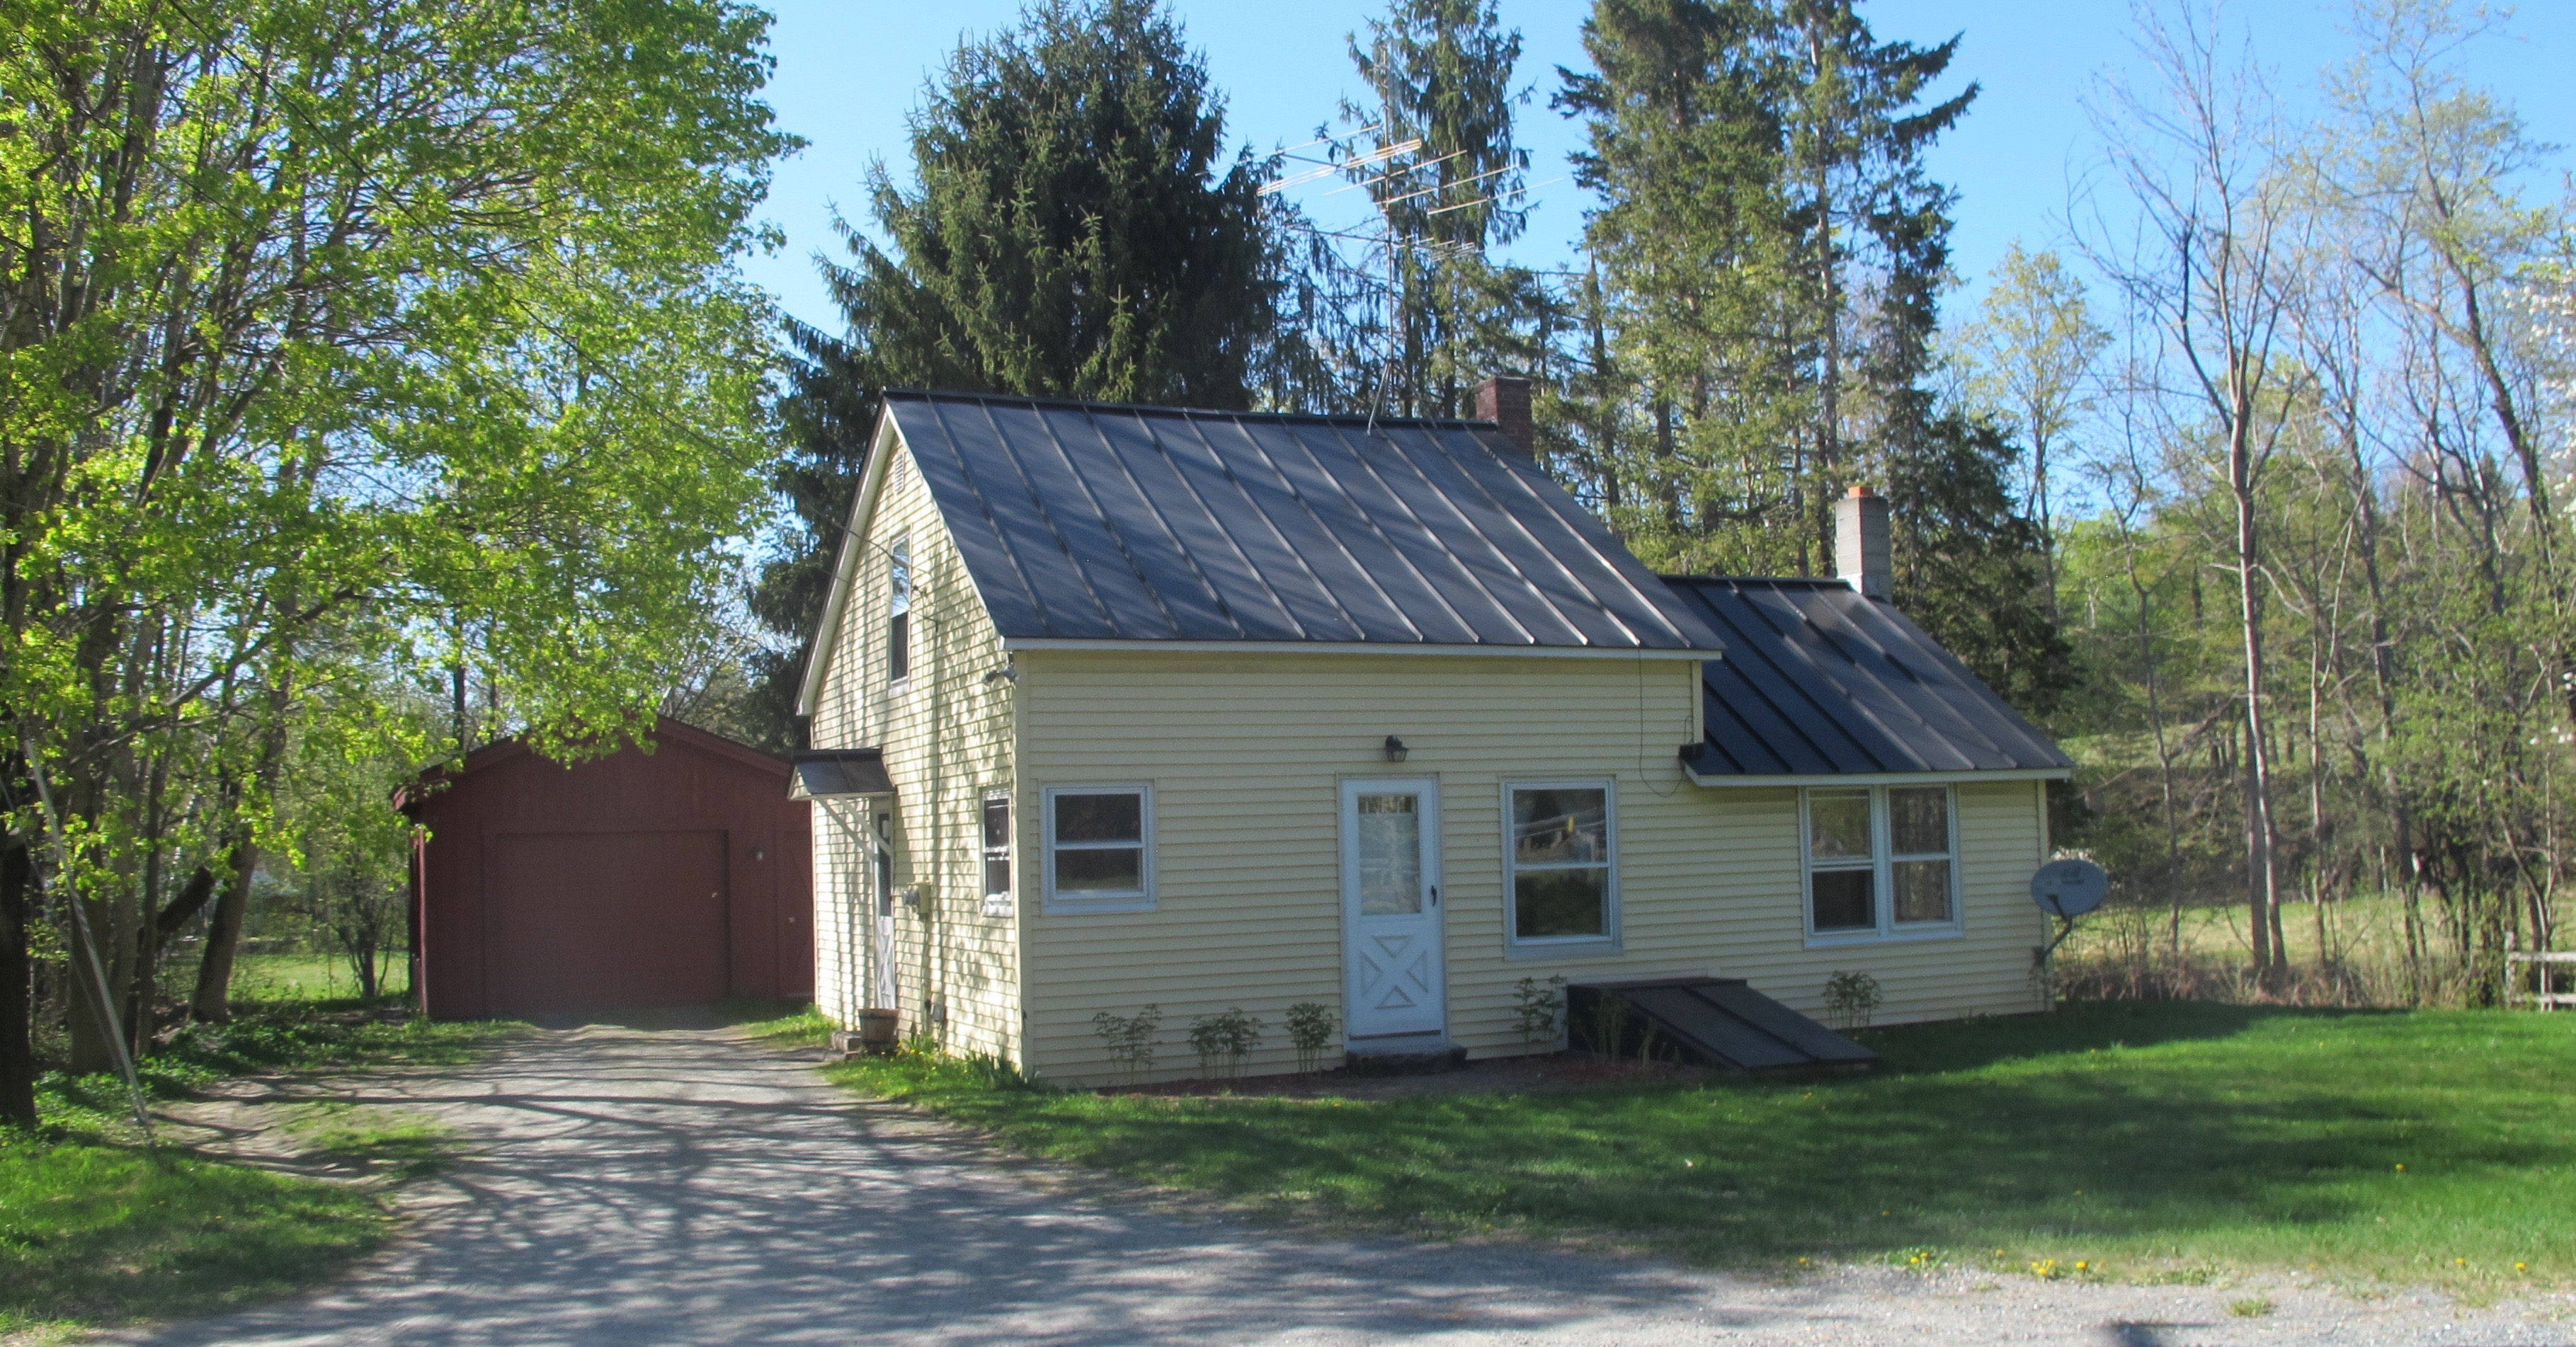 246 Hanover Center Rd, Etna, NH 03750